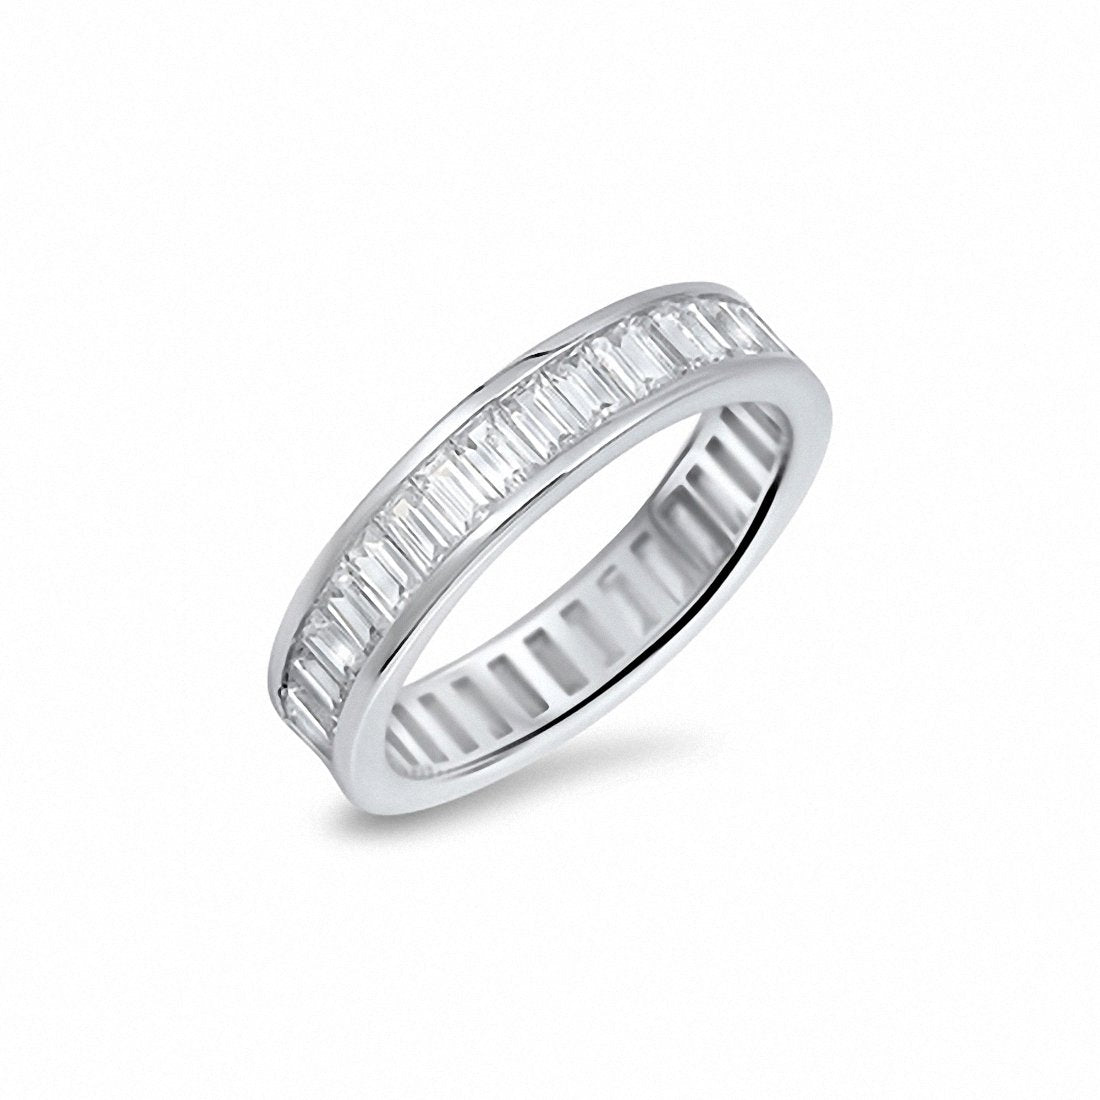 5mm Full Eternity Baguette Band Ring 925 Sterling Silver Choose Color